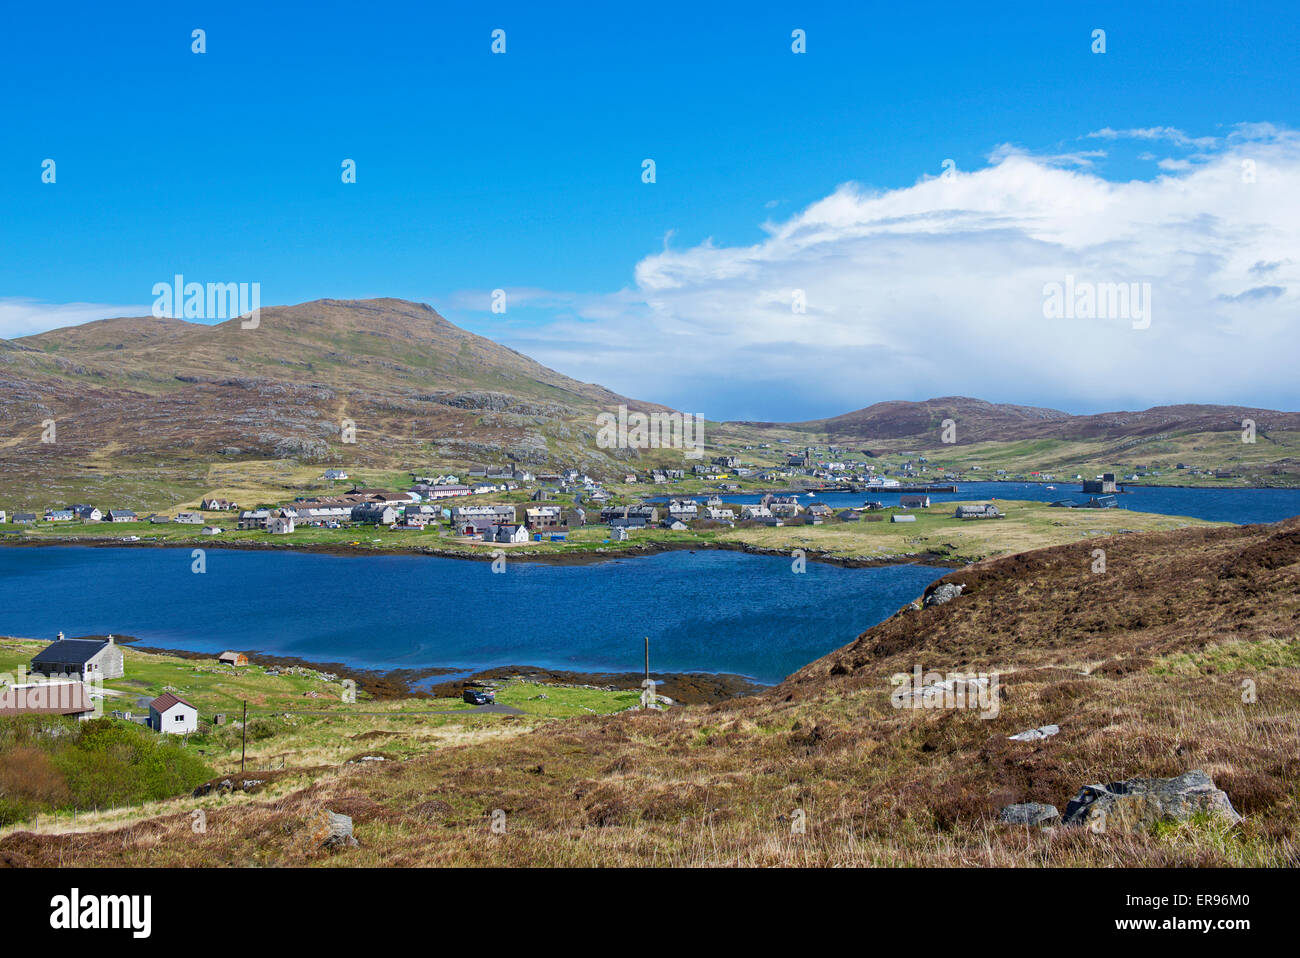 Castlebay, and hill, Heaval, Isle of Barra, Outer Hebrides, Scotland UK (taken from Vatersay) - Stock Image